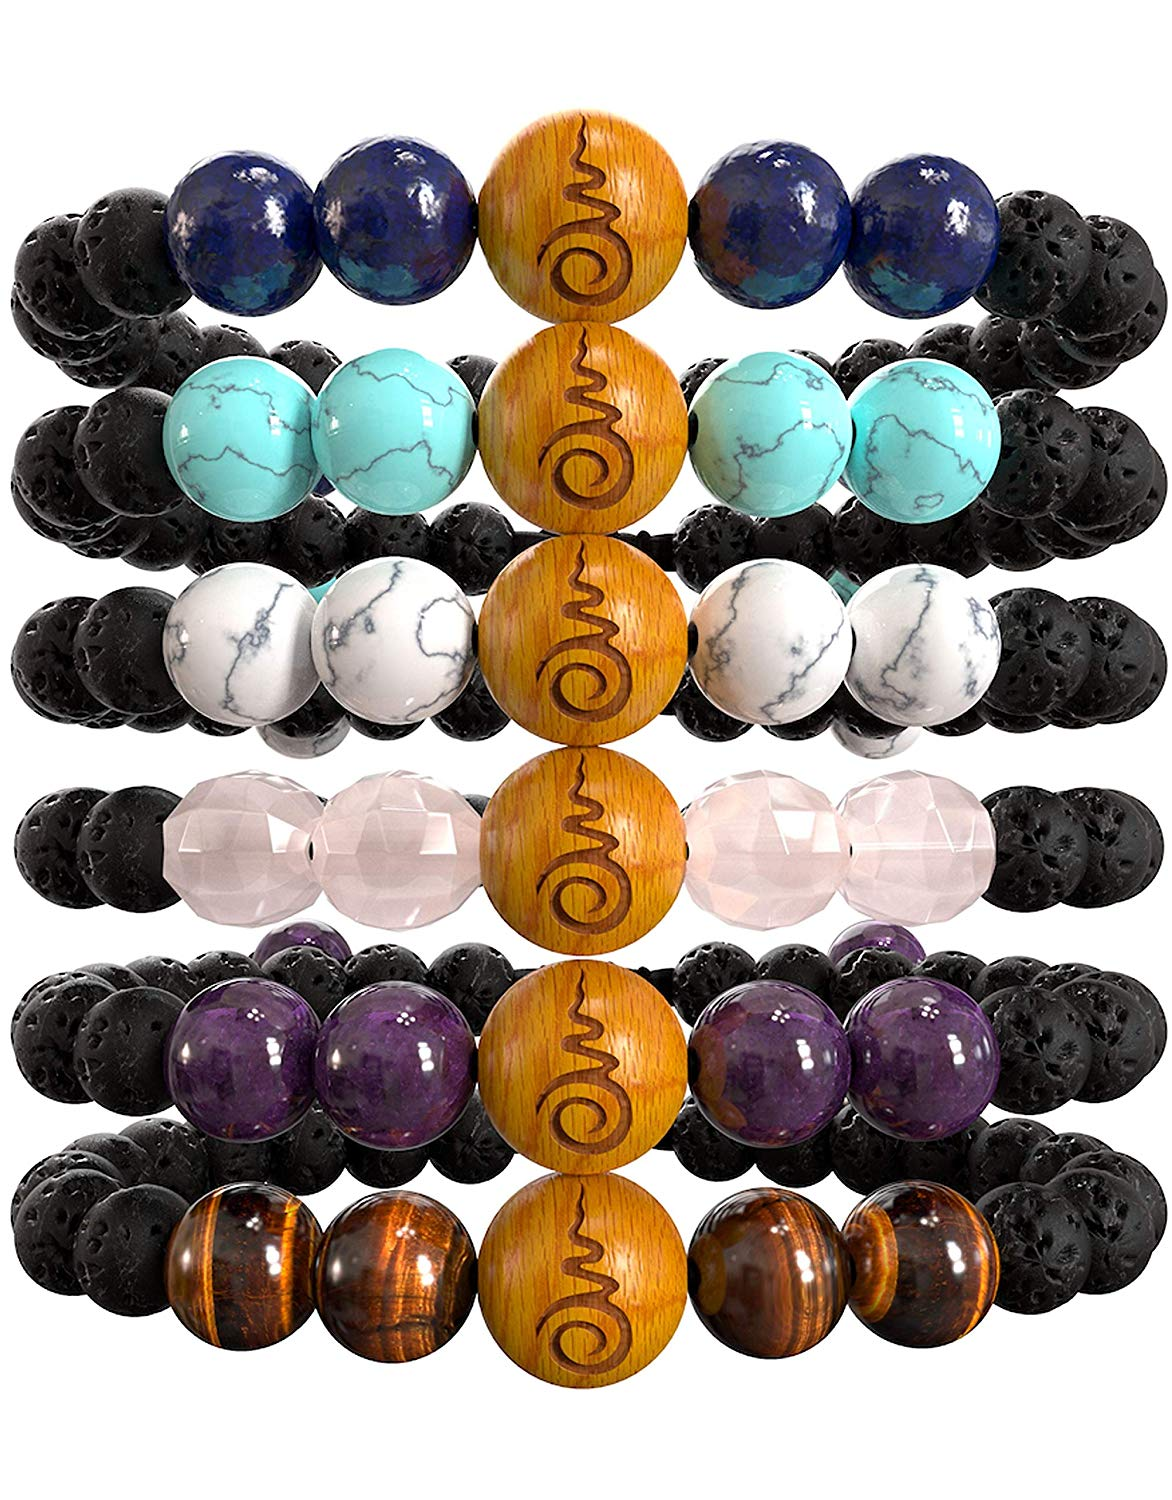 Rose Quartz, Amethyst, Tigers Eye, Lapis Lazuli, Blue & White Howlites, Sandalwood & Lavarock